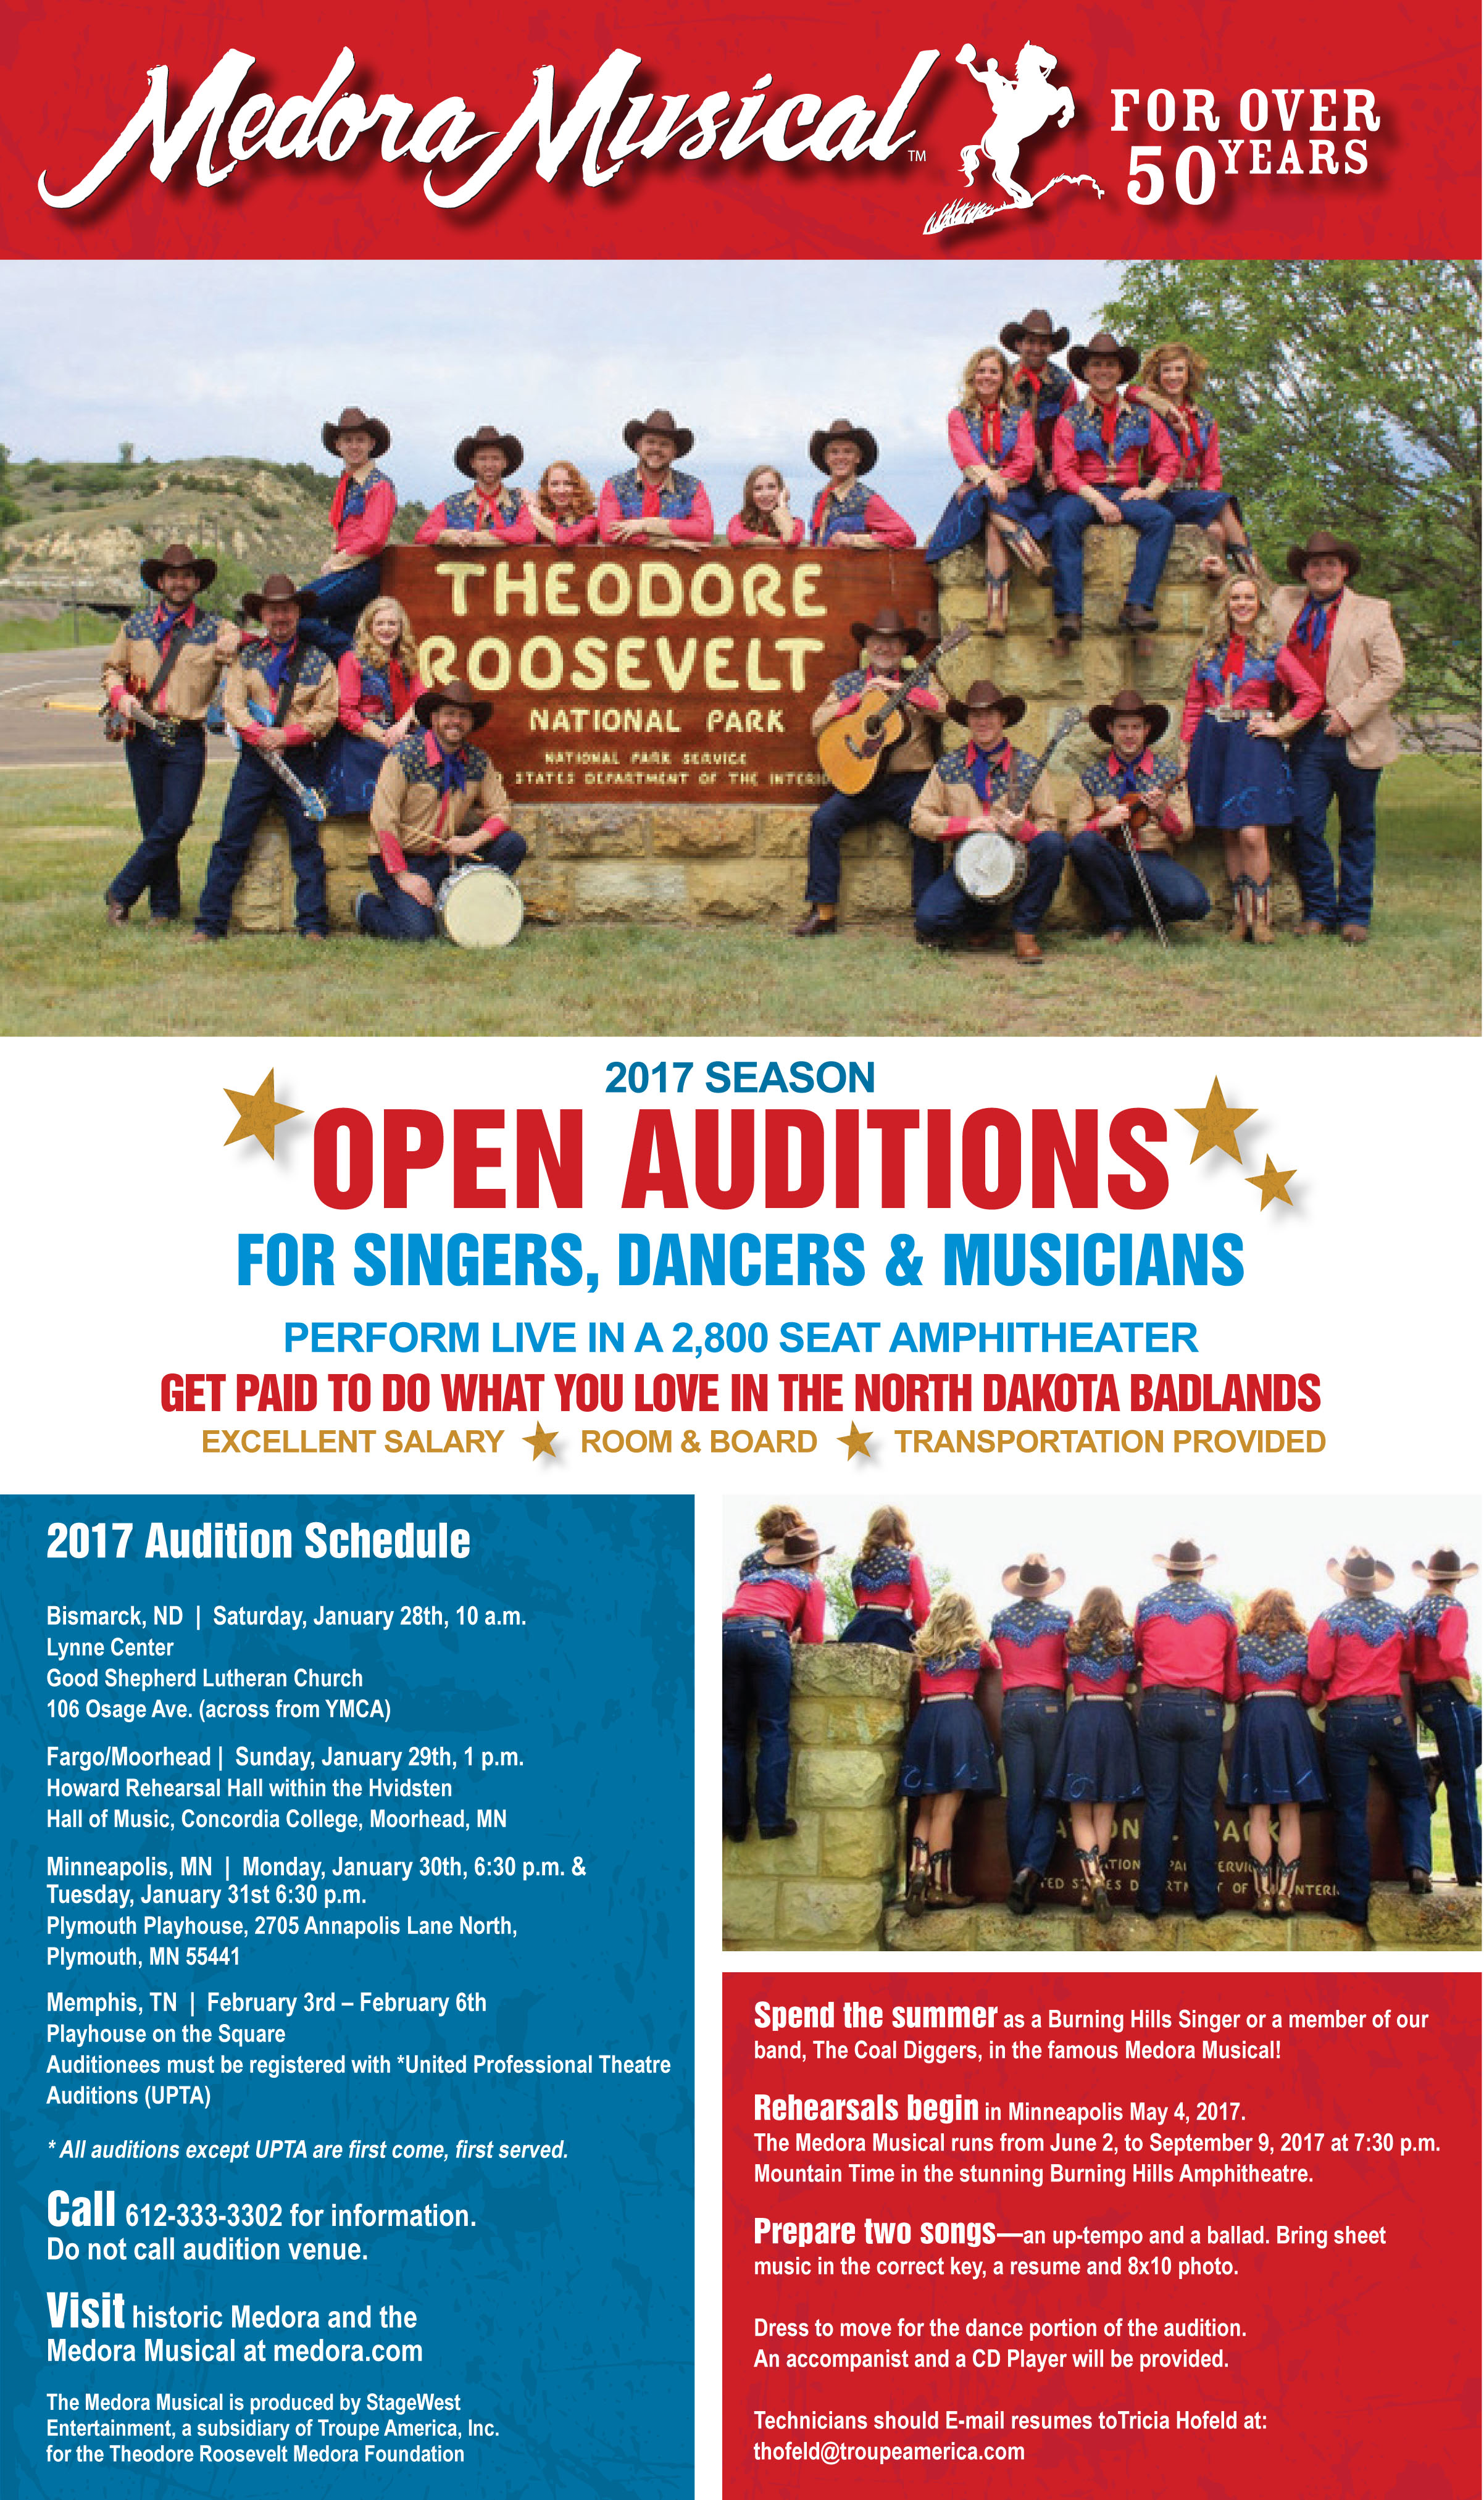 2017 Medora Musical Auditions Poster